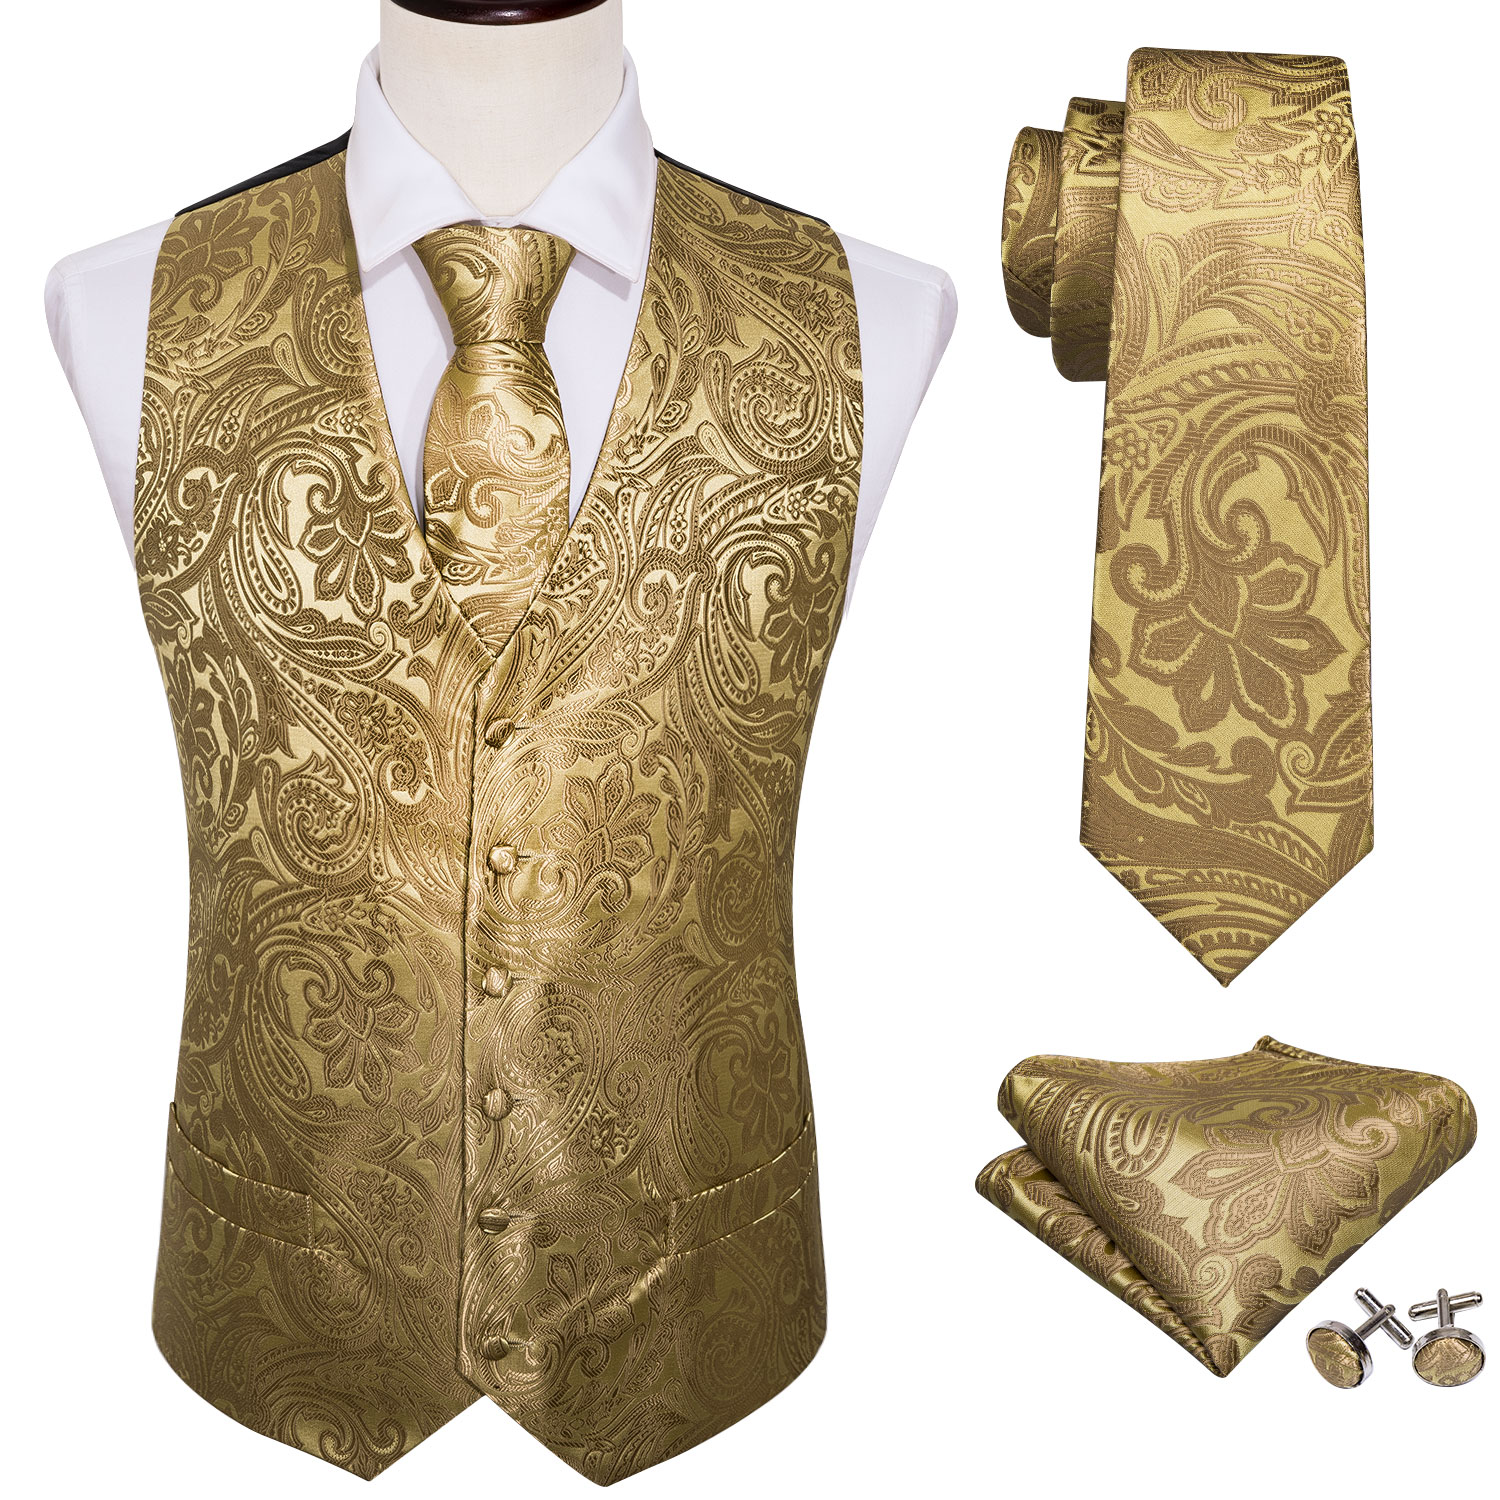 4PC Mens Extra Silk Vest Party Wedding Gold Paisley Solid Floral Waistcoat Vest Pocket Square Tie Suit Set Barry.Wang BM-2017